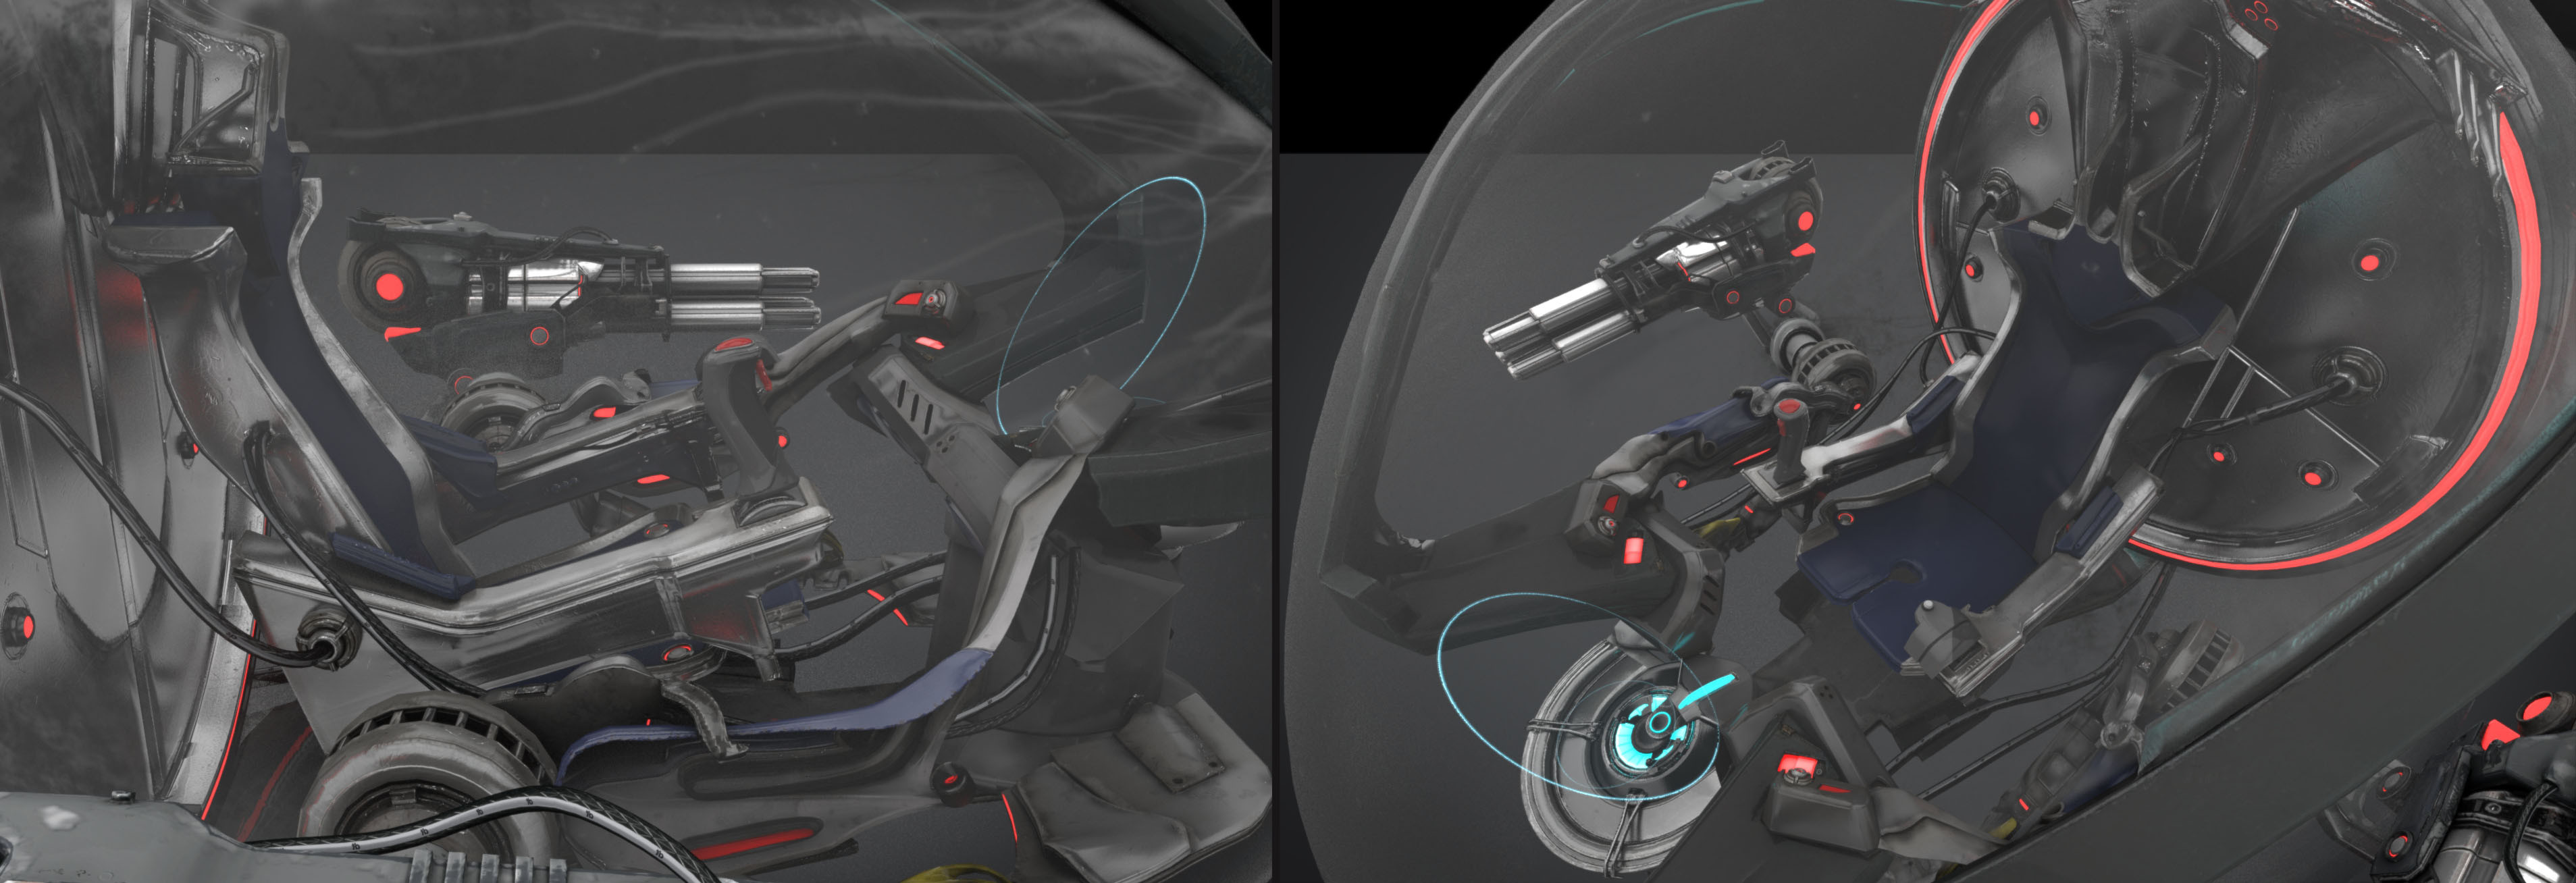 3D COCKPIT . FOR IN GAME